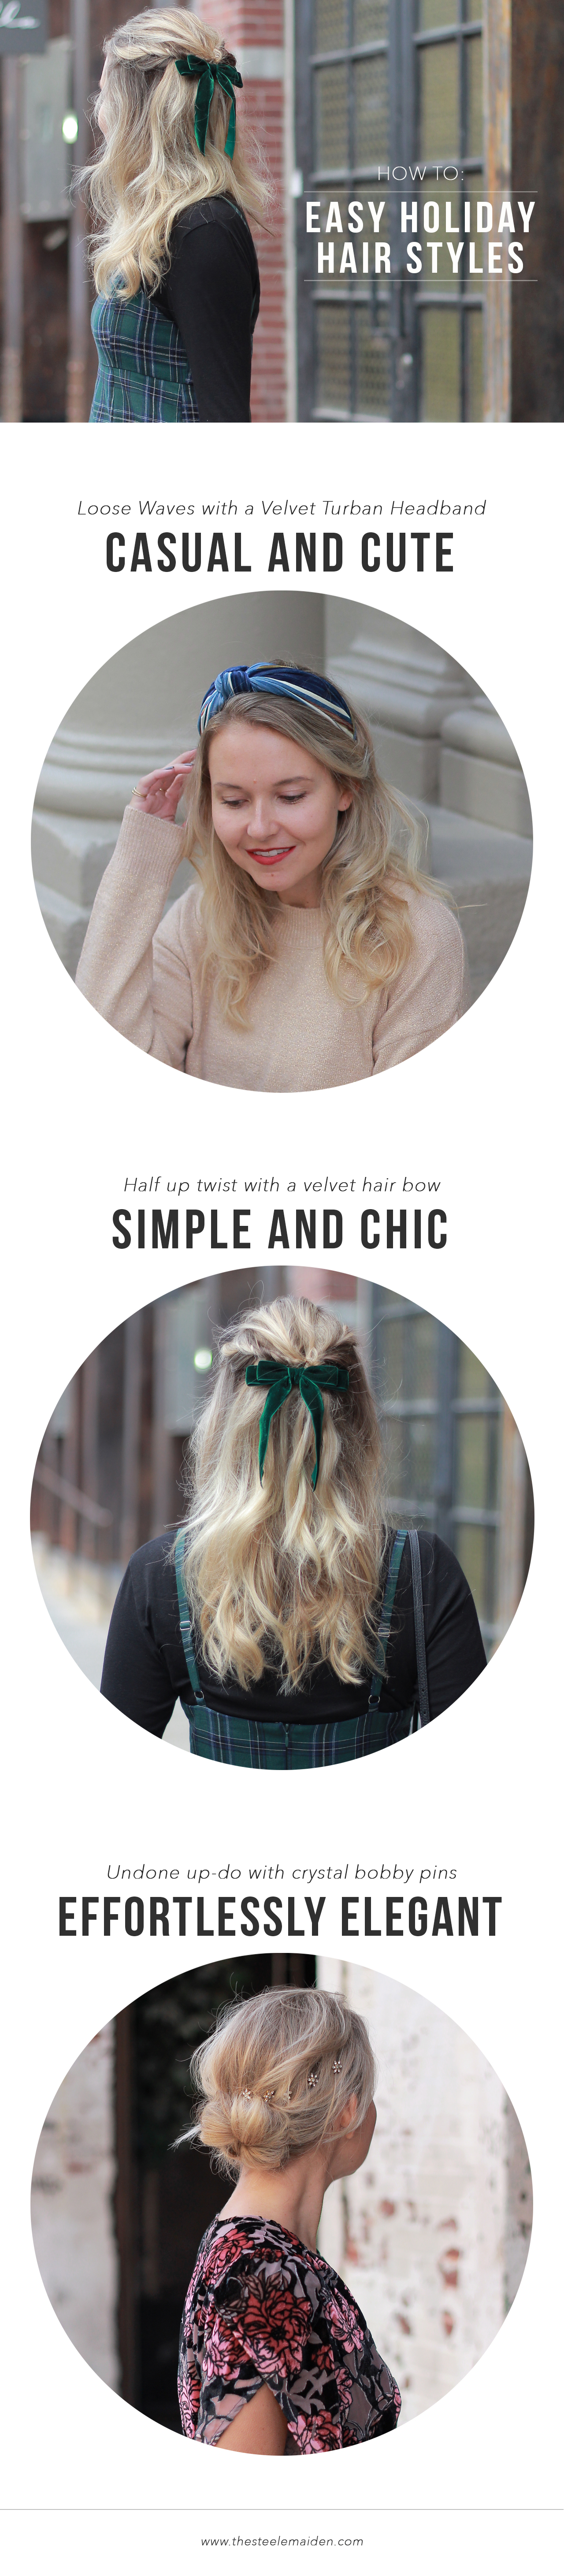 The Steele Maiden: How to: Easy Holiday Hair Style with Hair Accessories